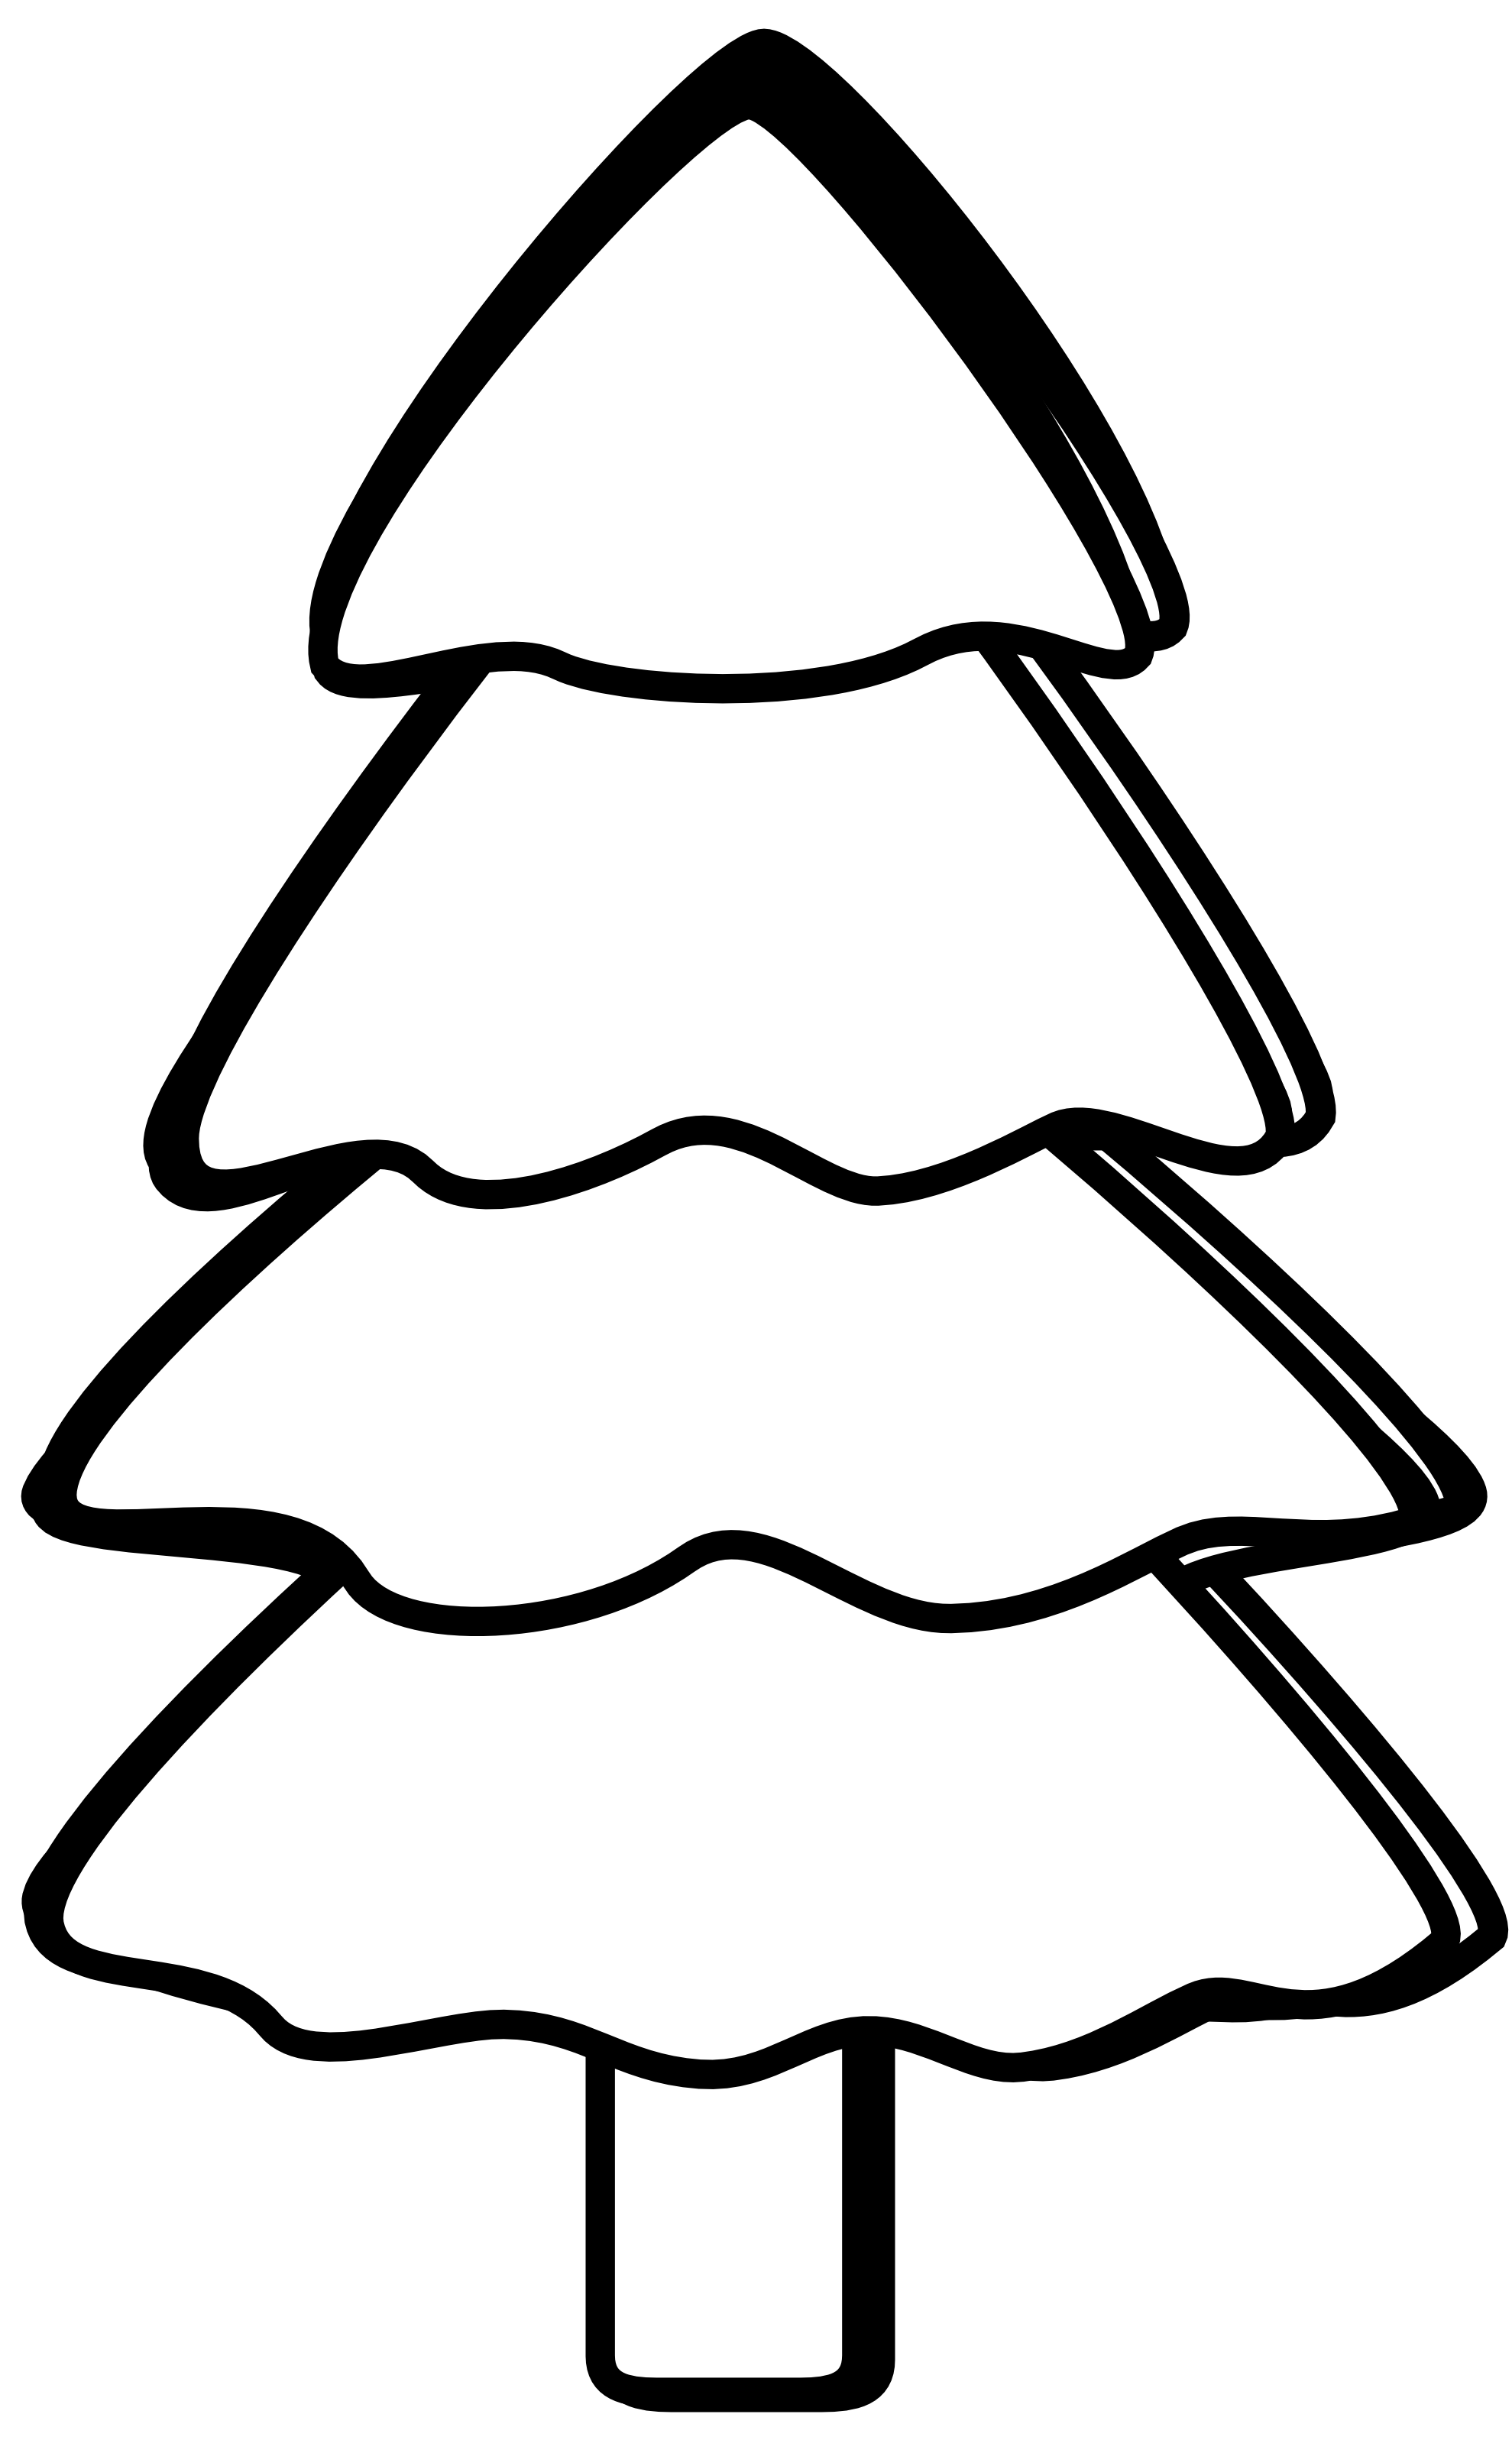 Tree free download best. Syringe clipart black and white